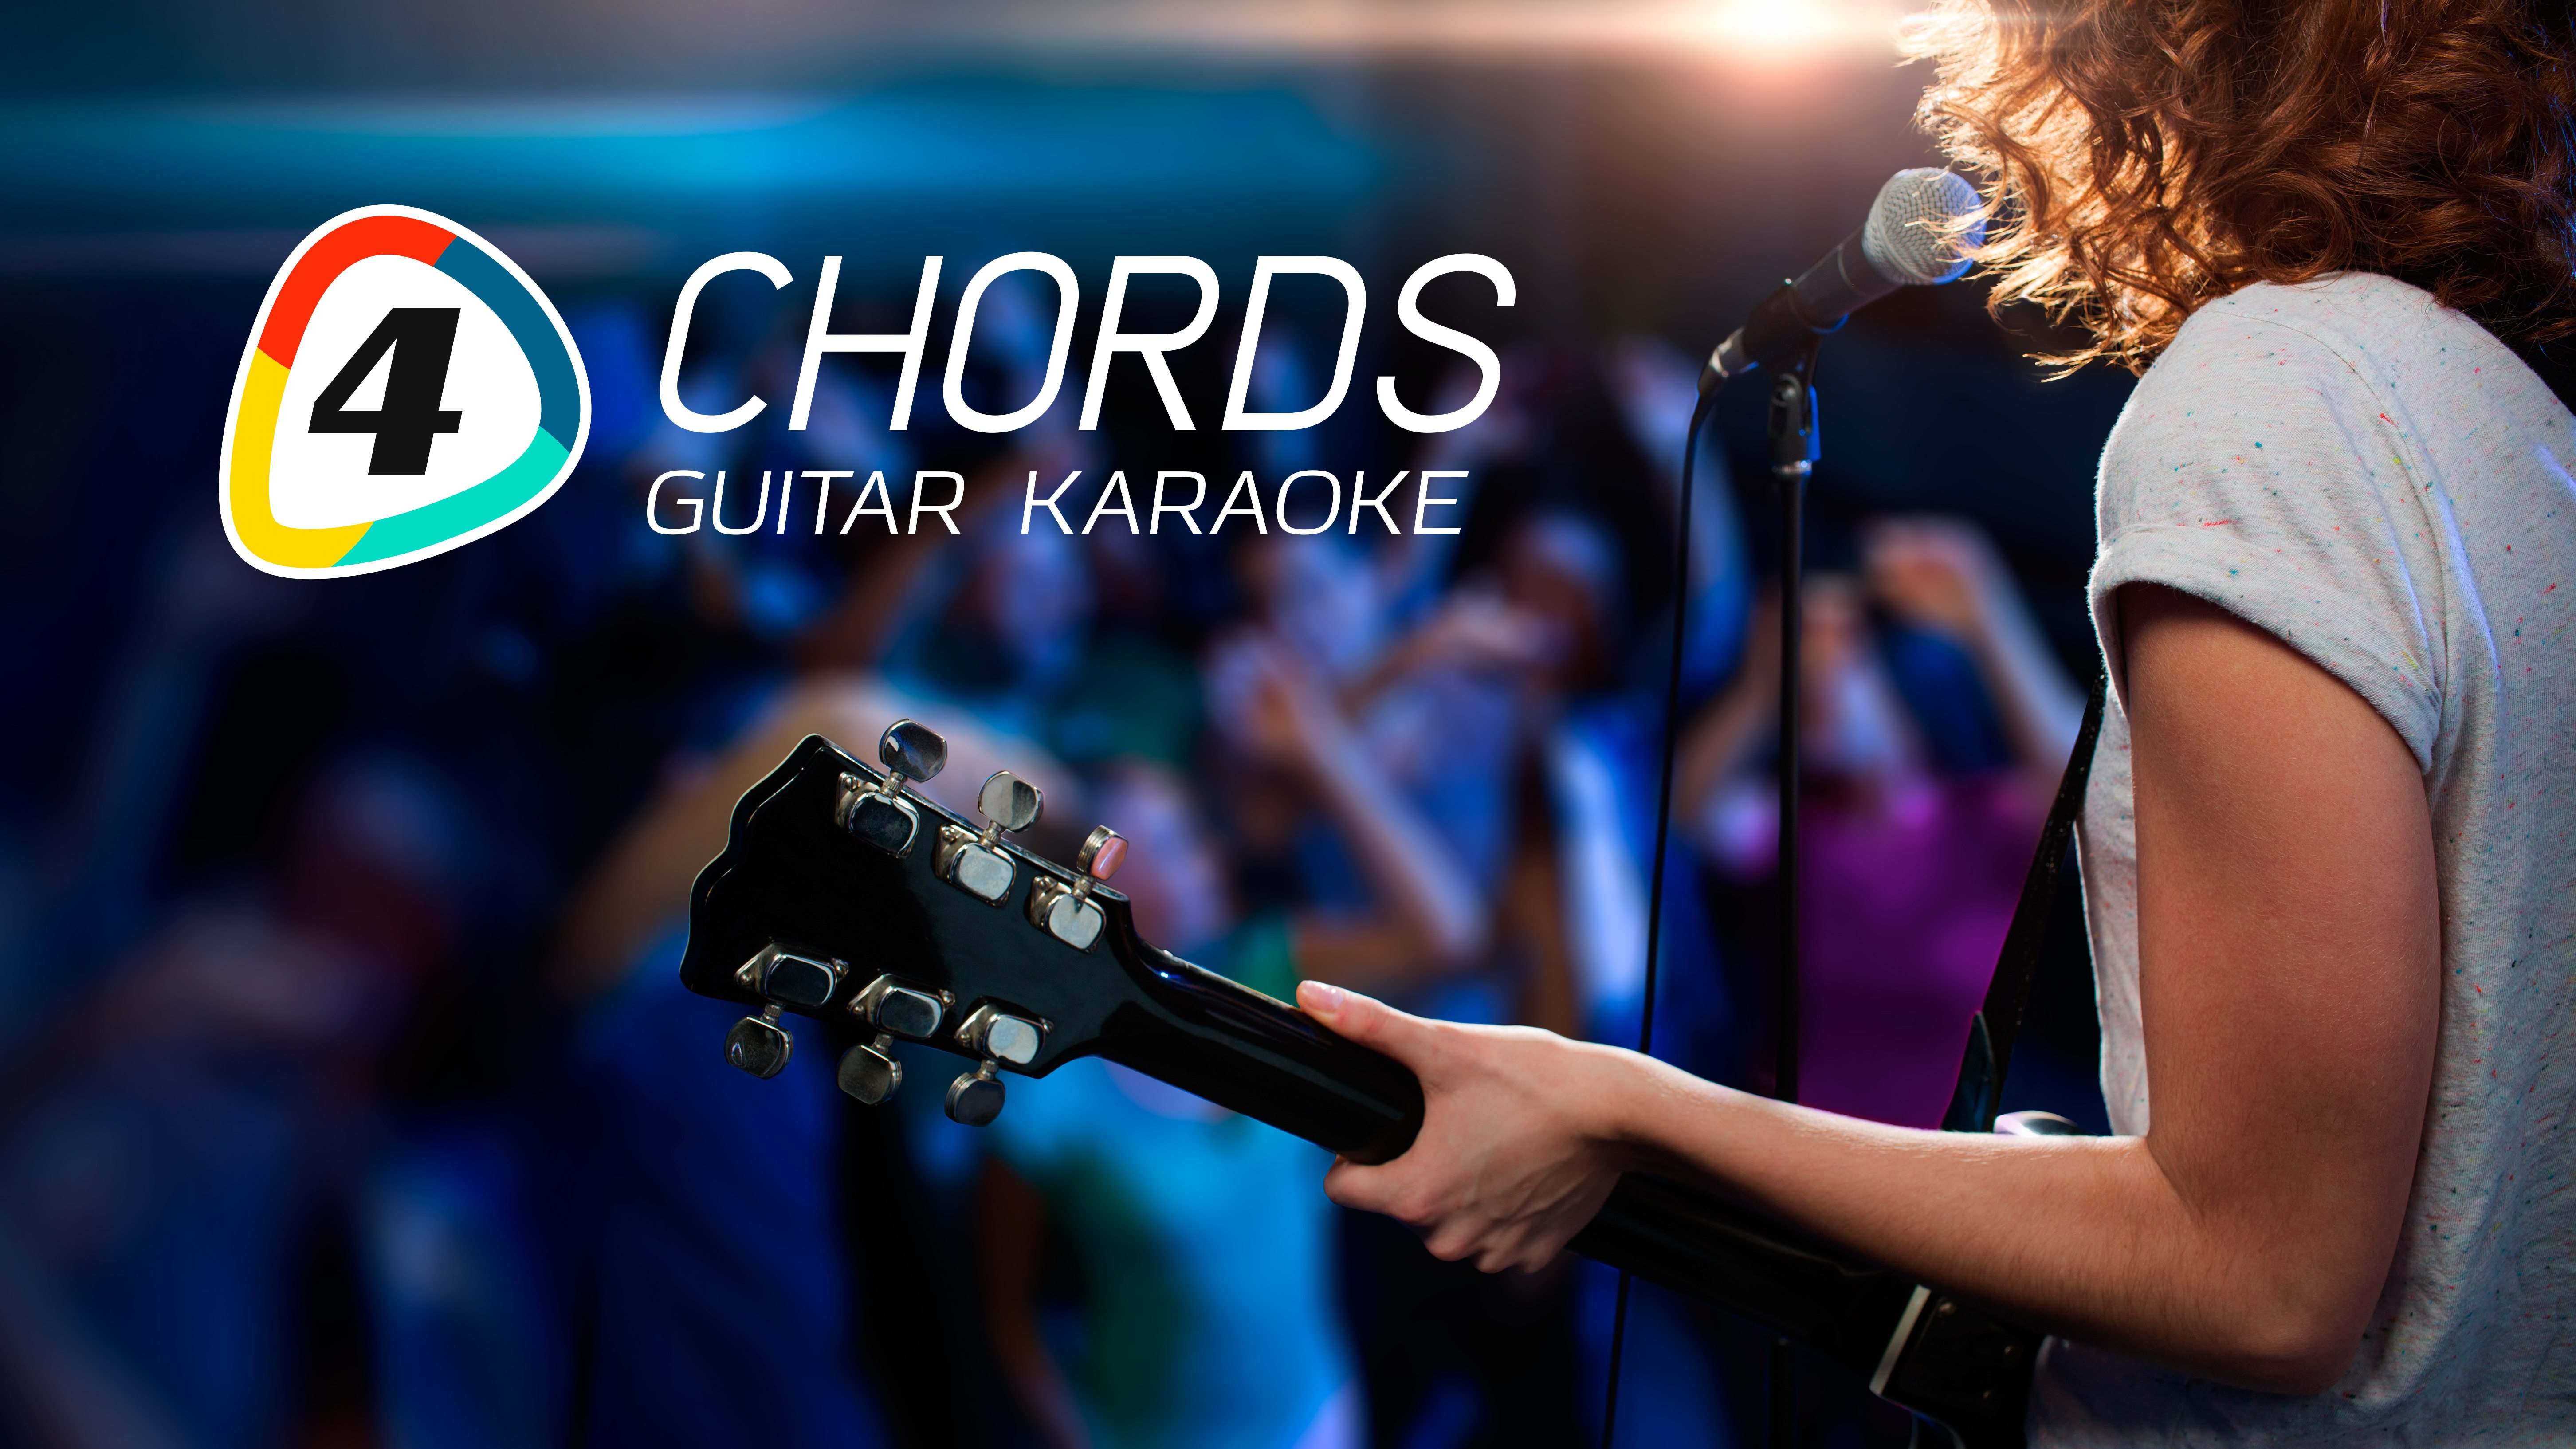 FourChords Guitar Karaoke Now Available on Steam at Introductory Price